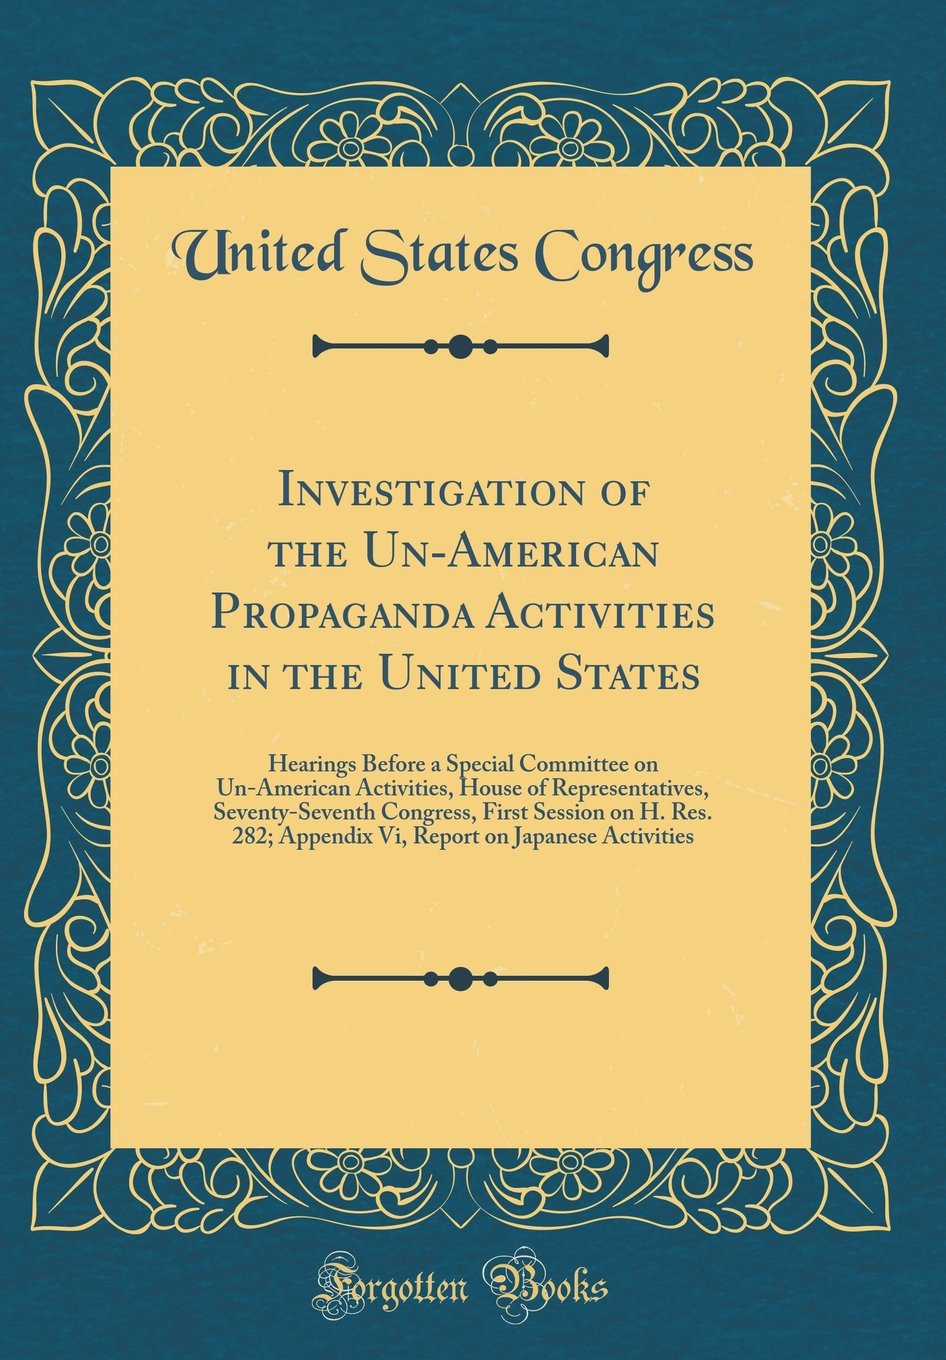 Investigation of the Un-American Propaganda Activities in the United States: Hearings Before a Special Committee on Un-American Activities, House of ... Res. 282; Appendix VI, Report on Japanese a PDF